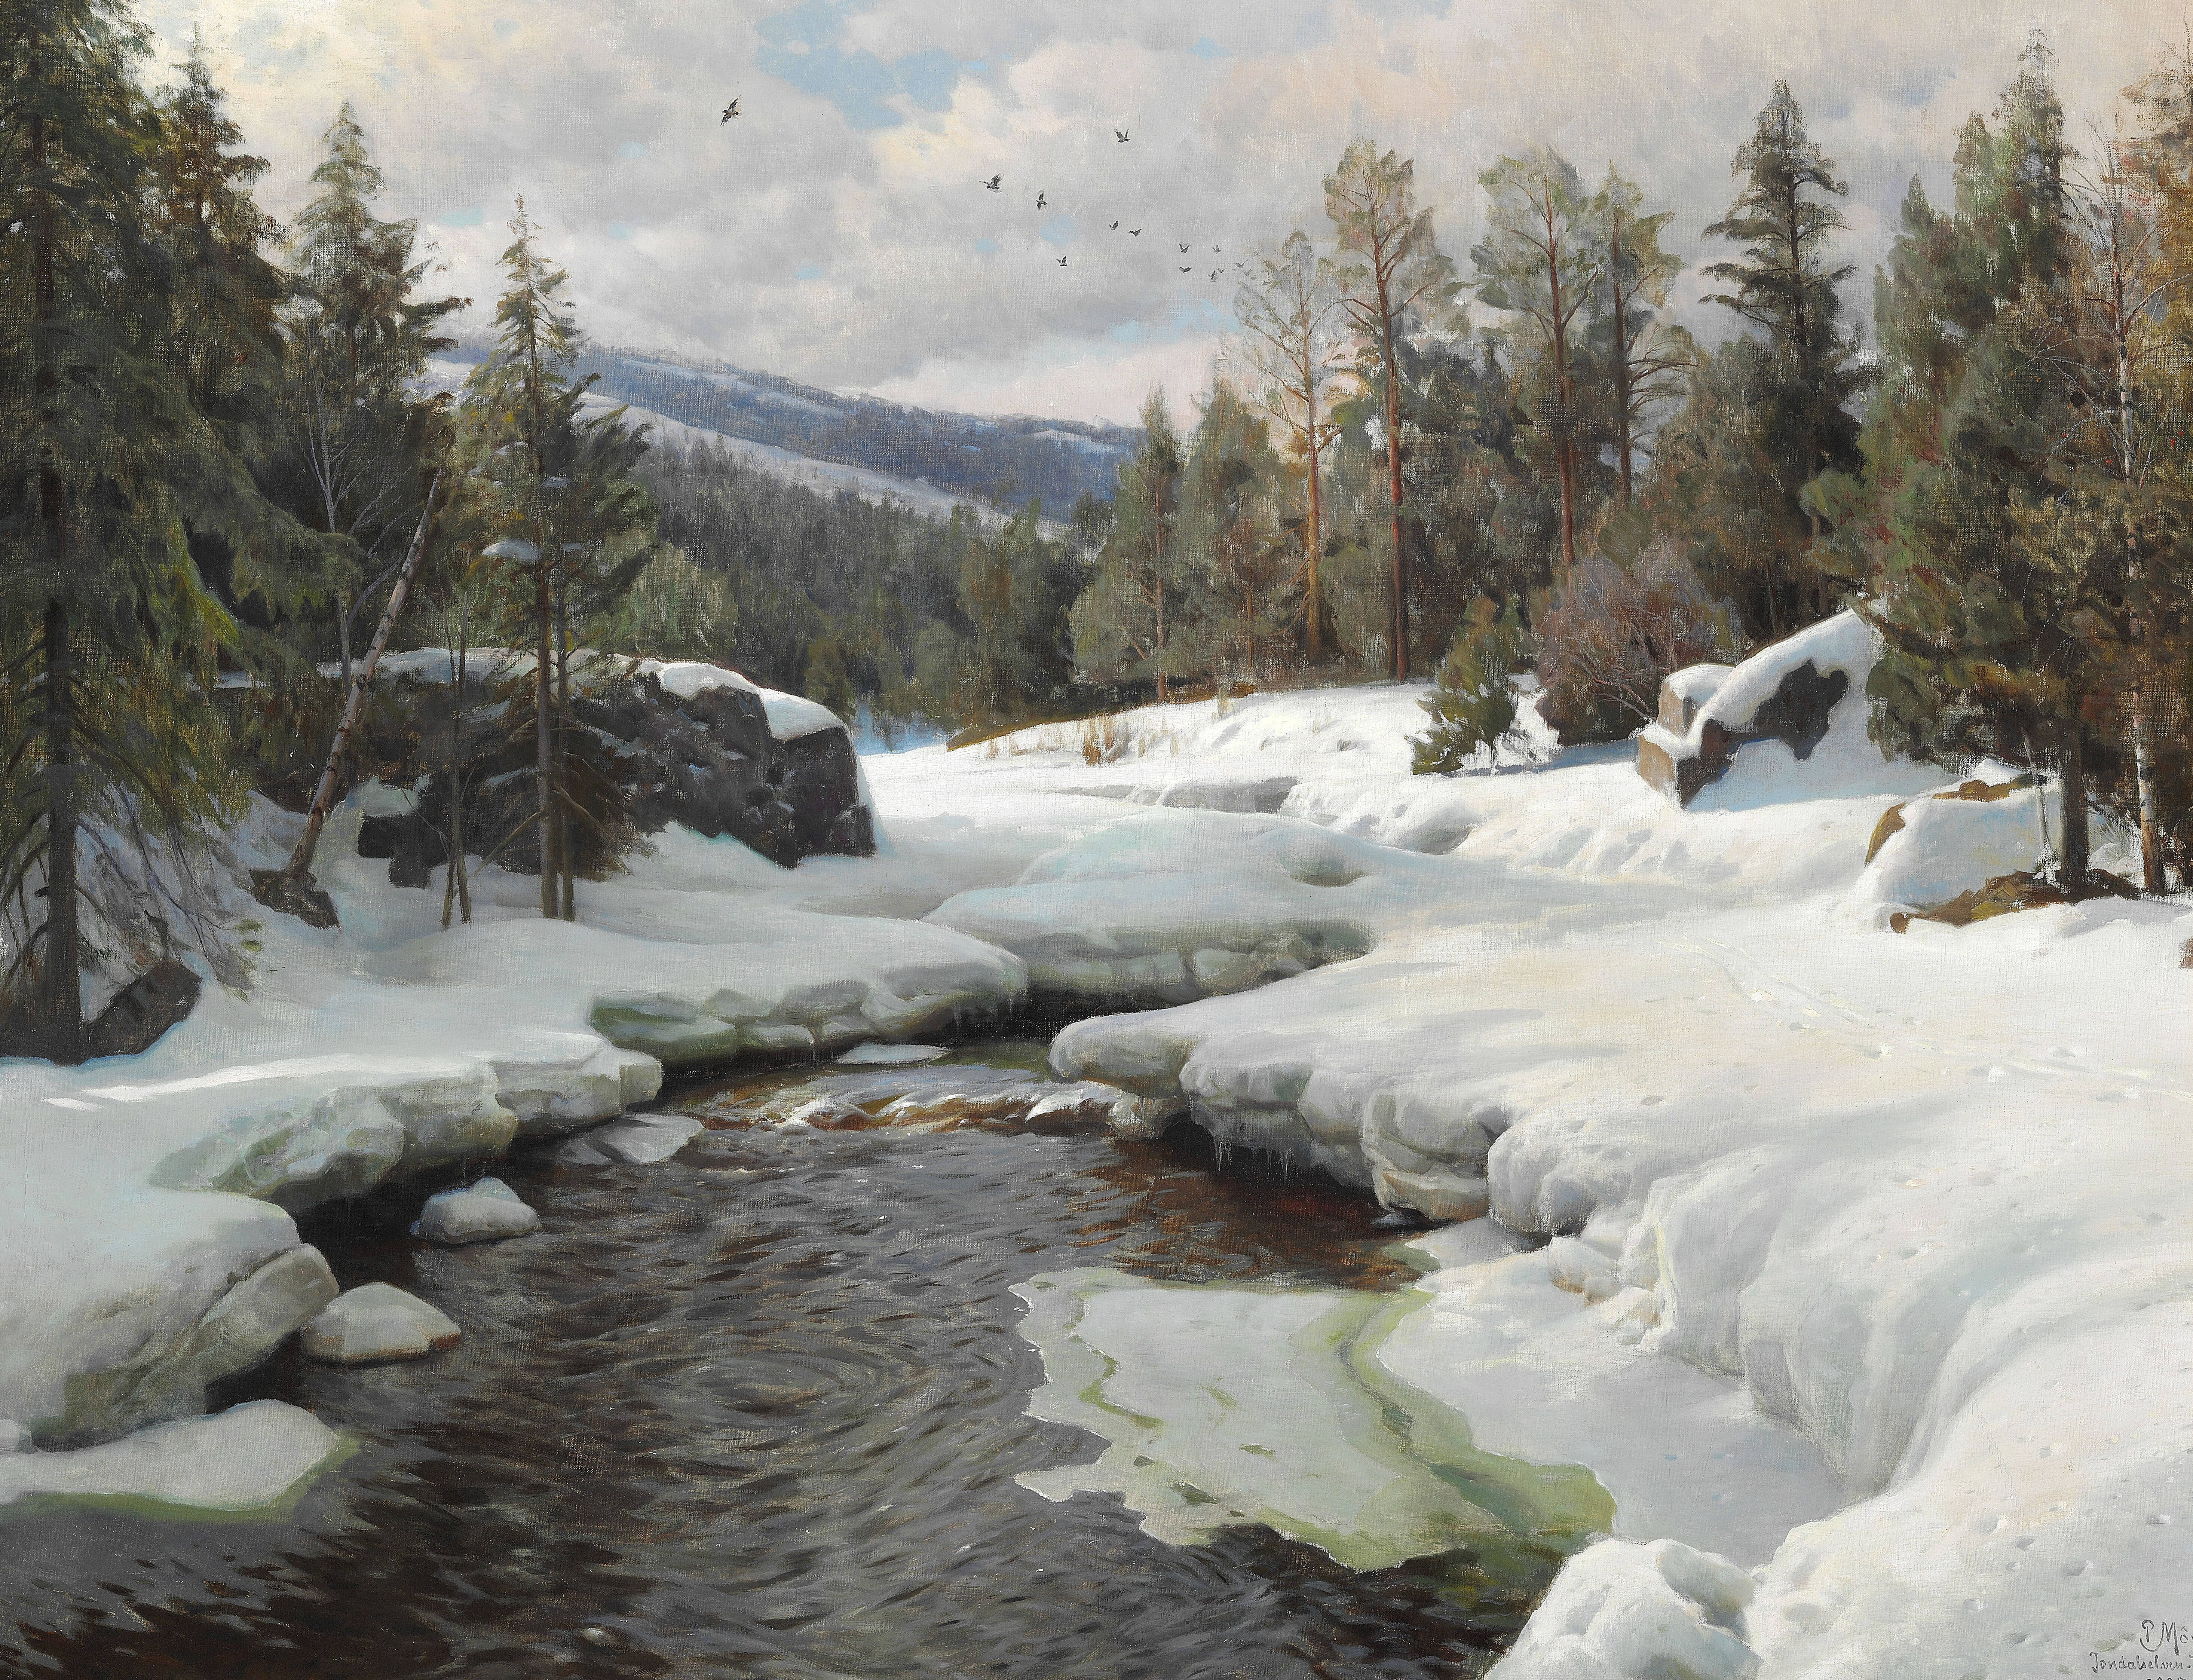 Peder Mørk Mønsted, A day in April with spring thaw. Jondalselven (the river of Jondal). Telemark in Norway,